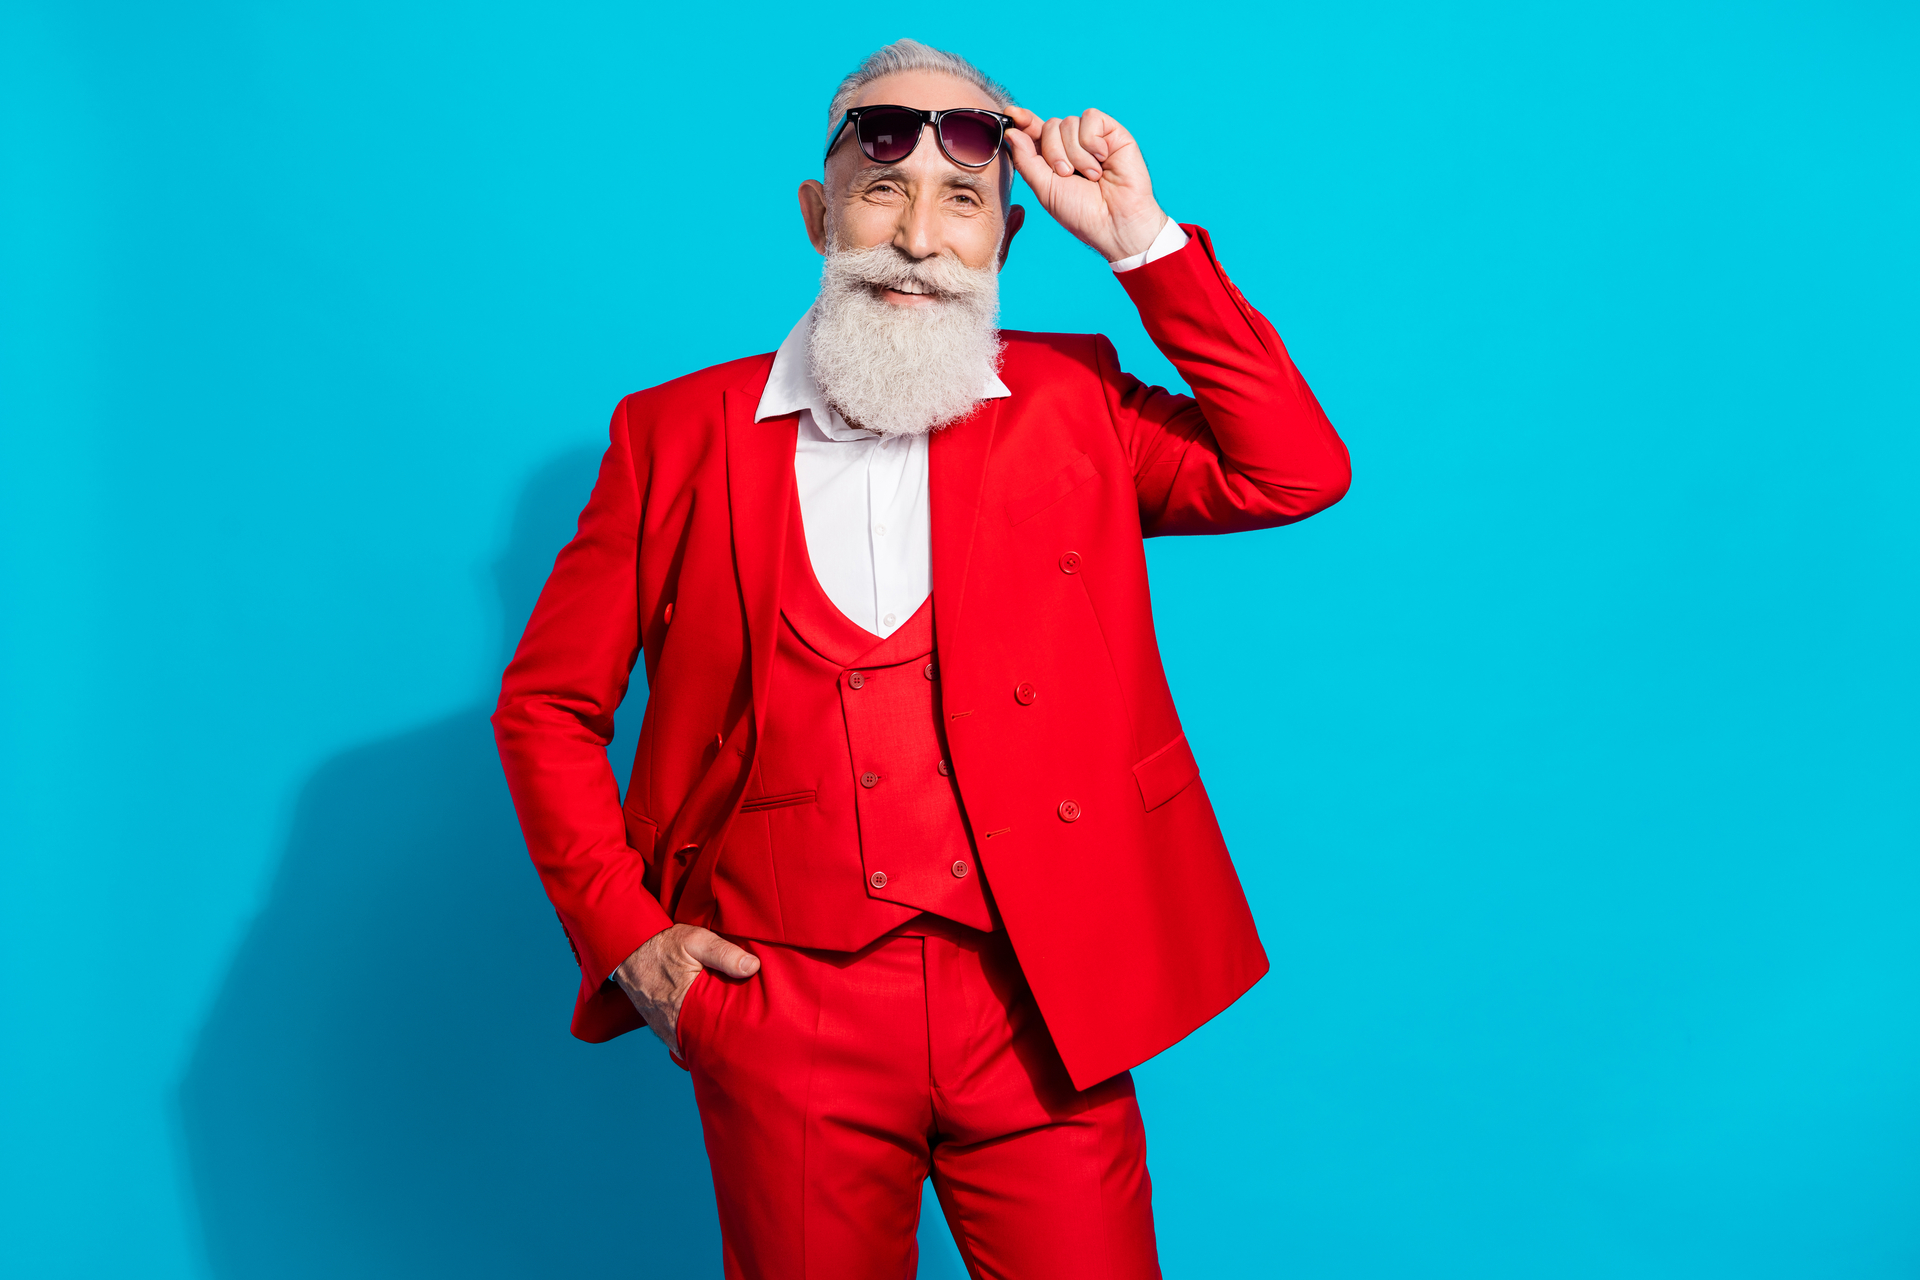 Smiling and stylish mature businessman with white beard wears sunglasses and red suit on bright blue background